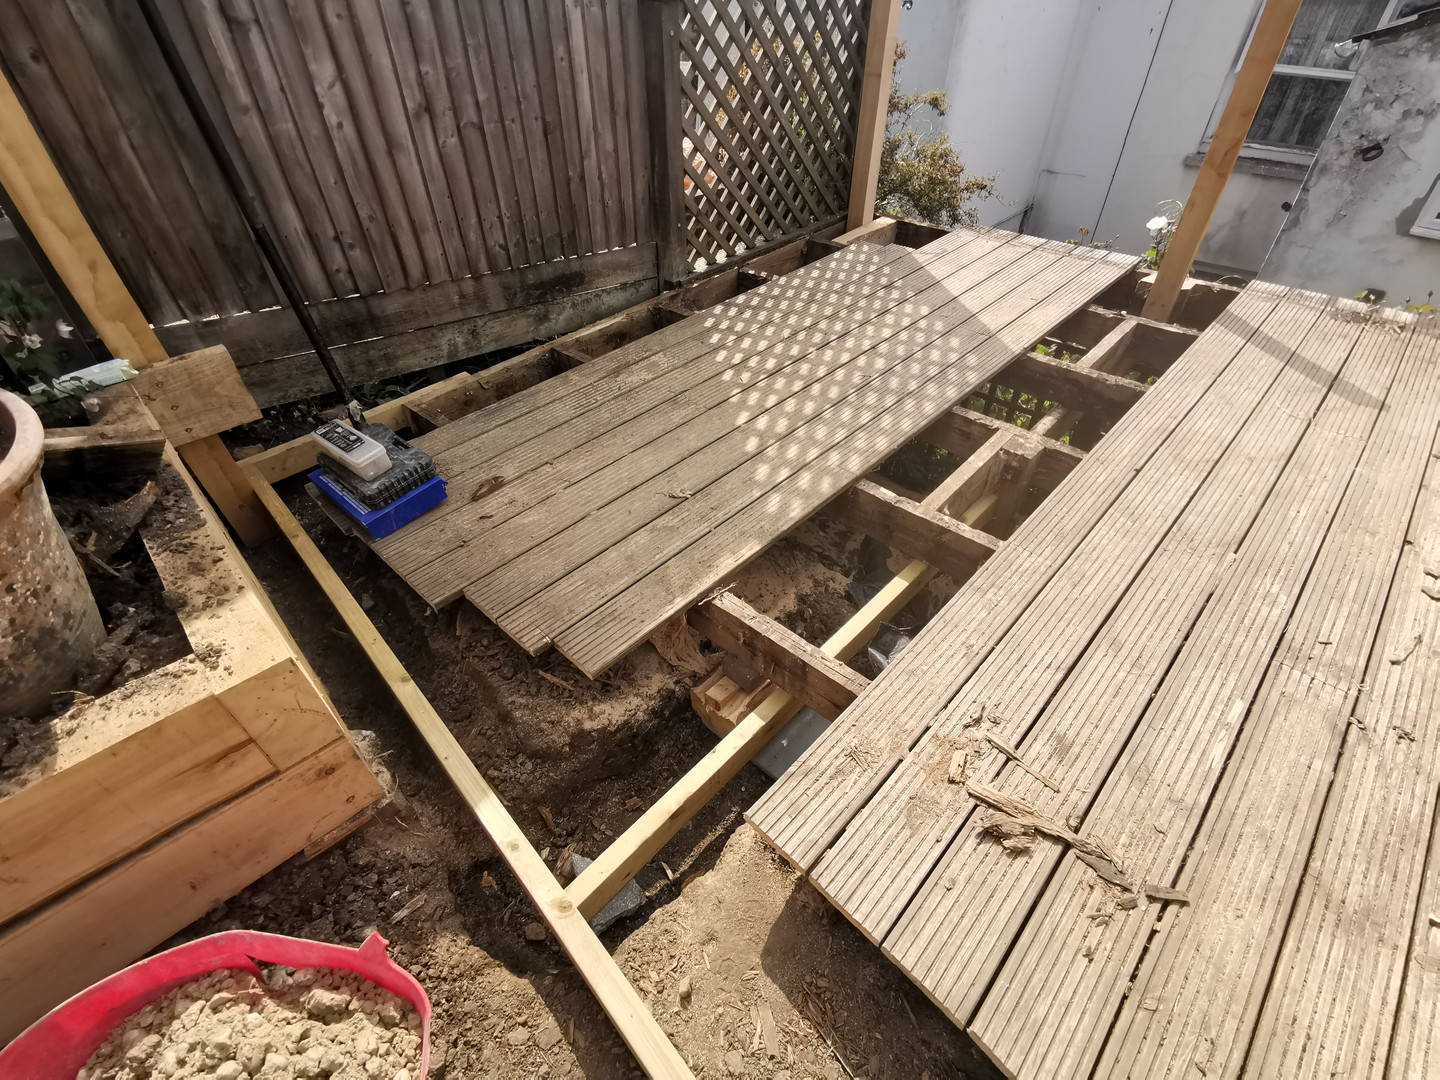 Decking being replaced